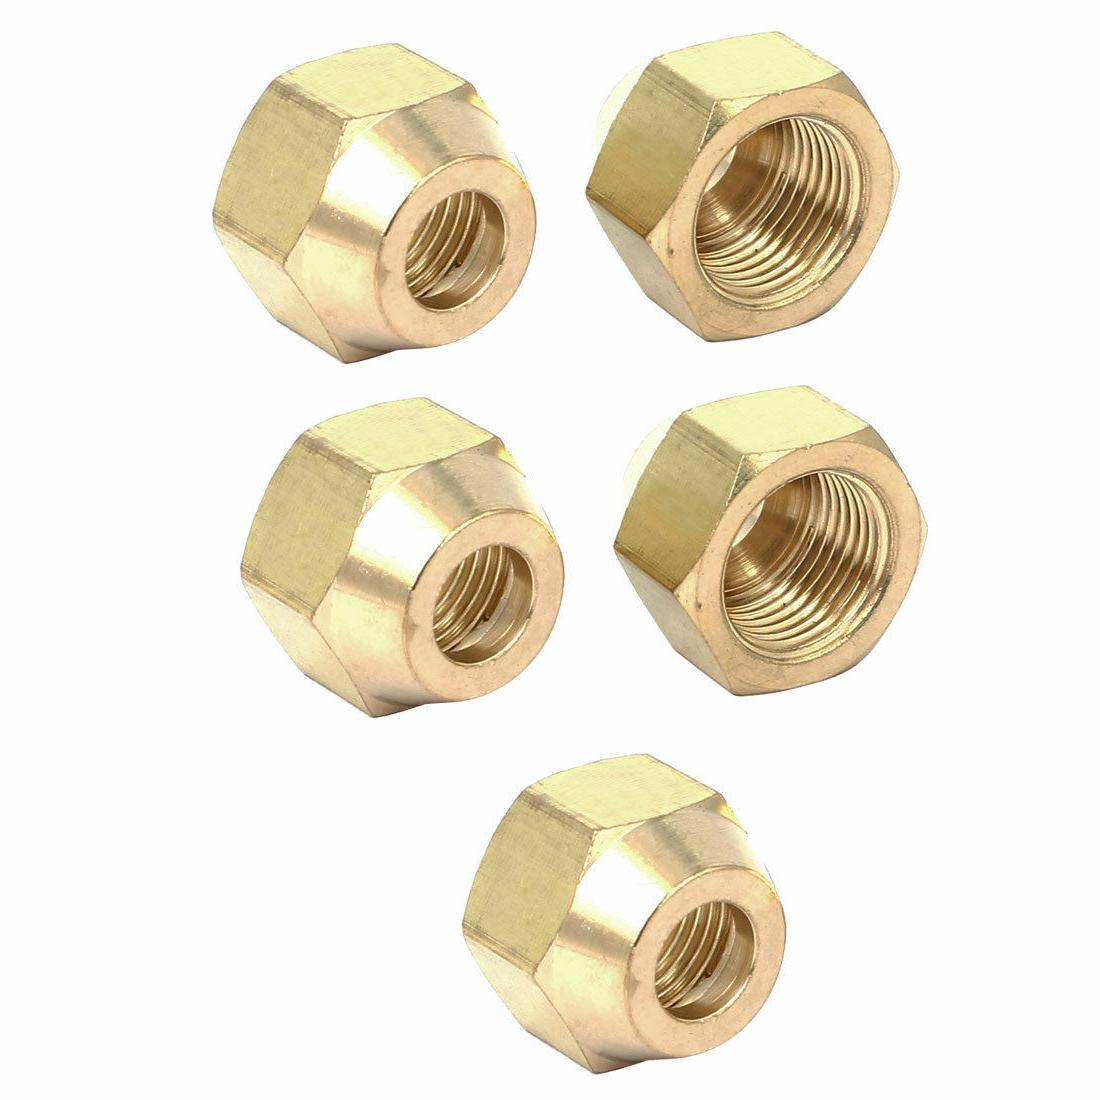 3/8 Brass Forged Female Conditioner Fittings